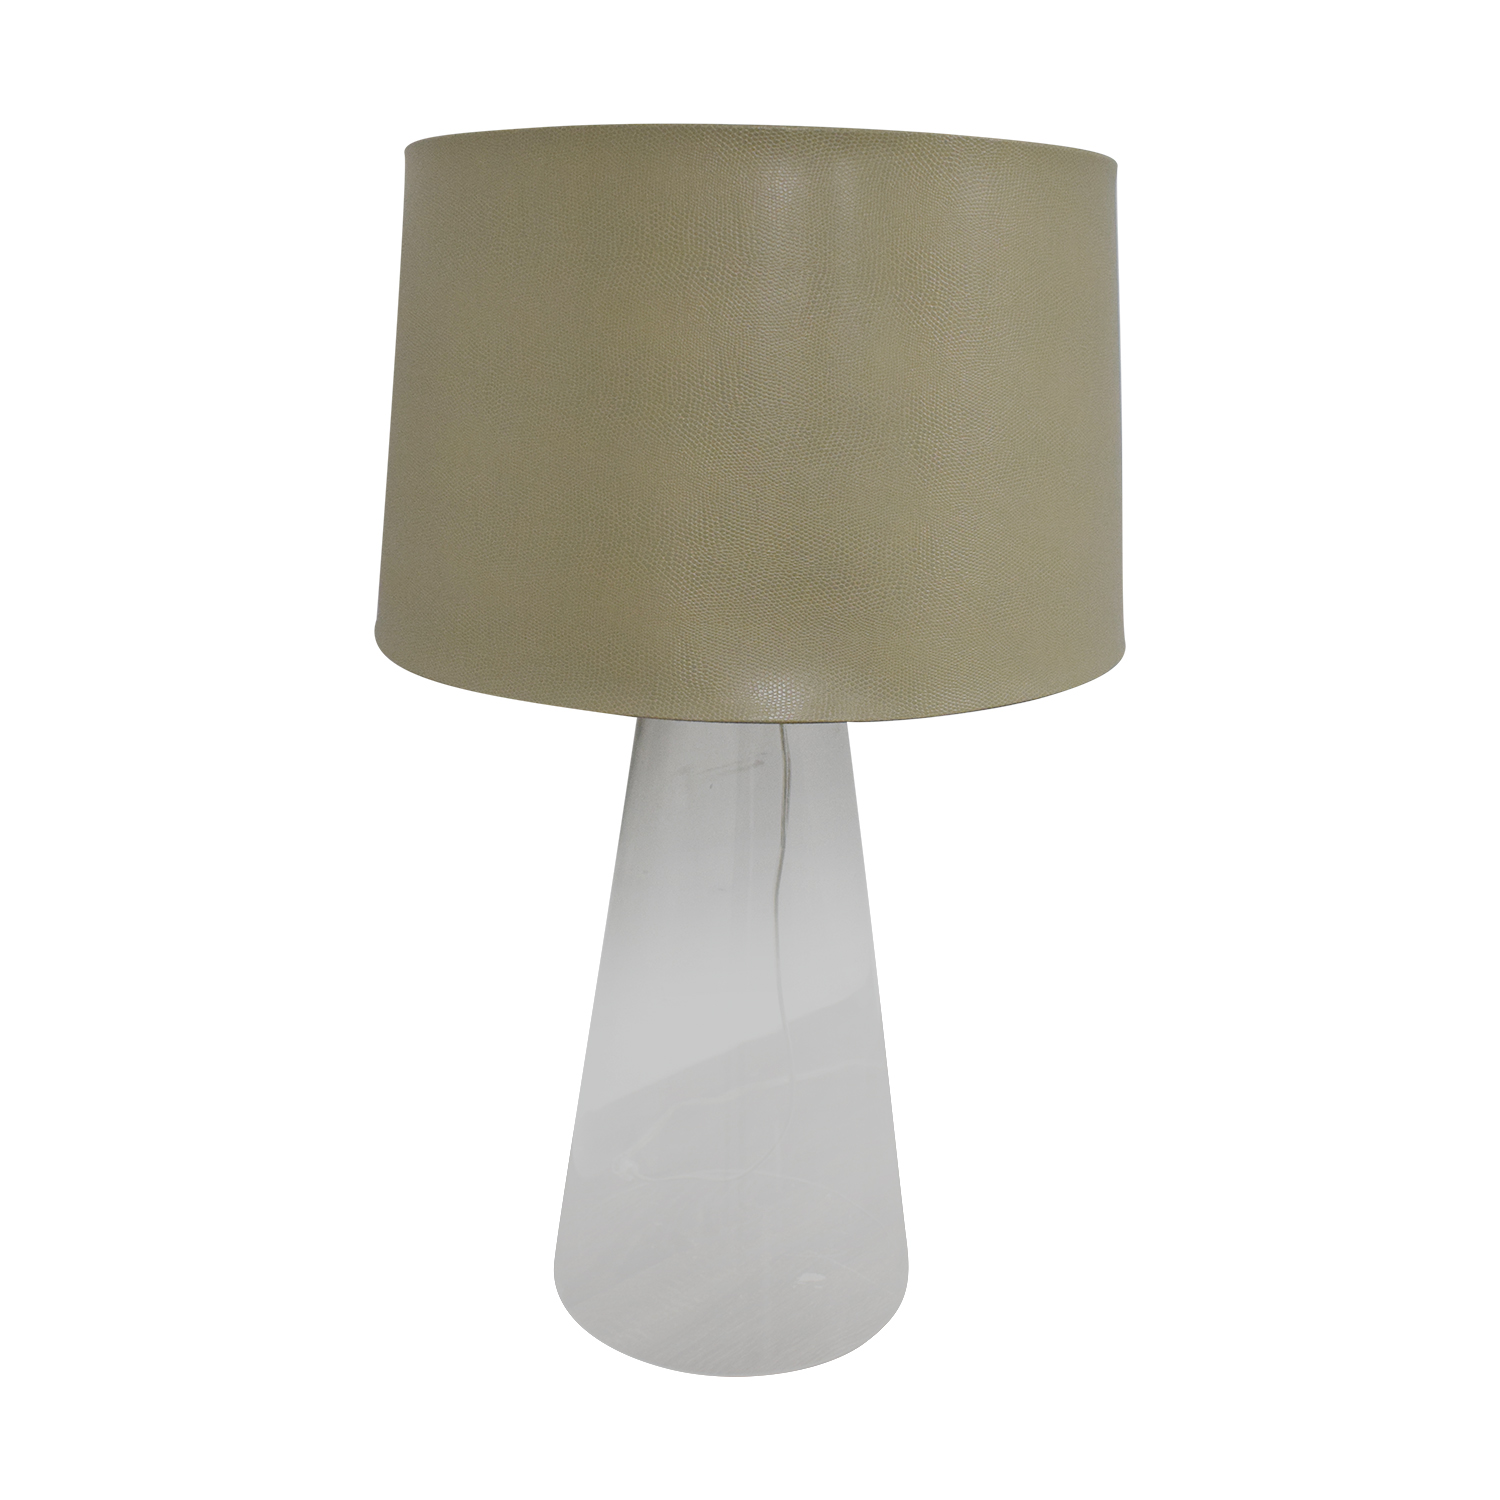 buy Crate & Barrel Crate & Barrel Table Lamp online